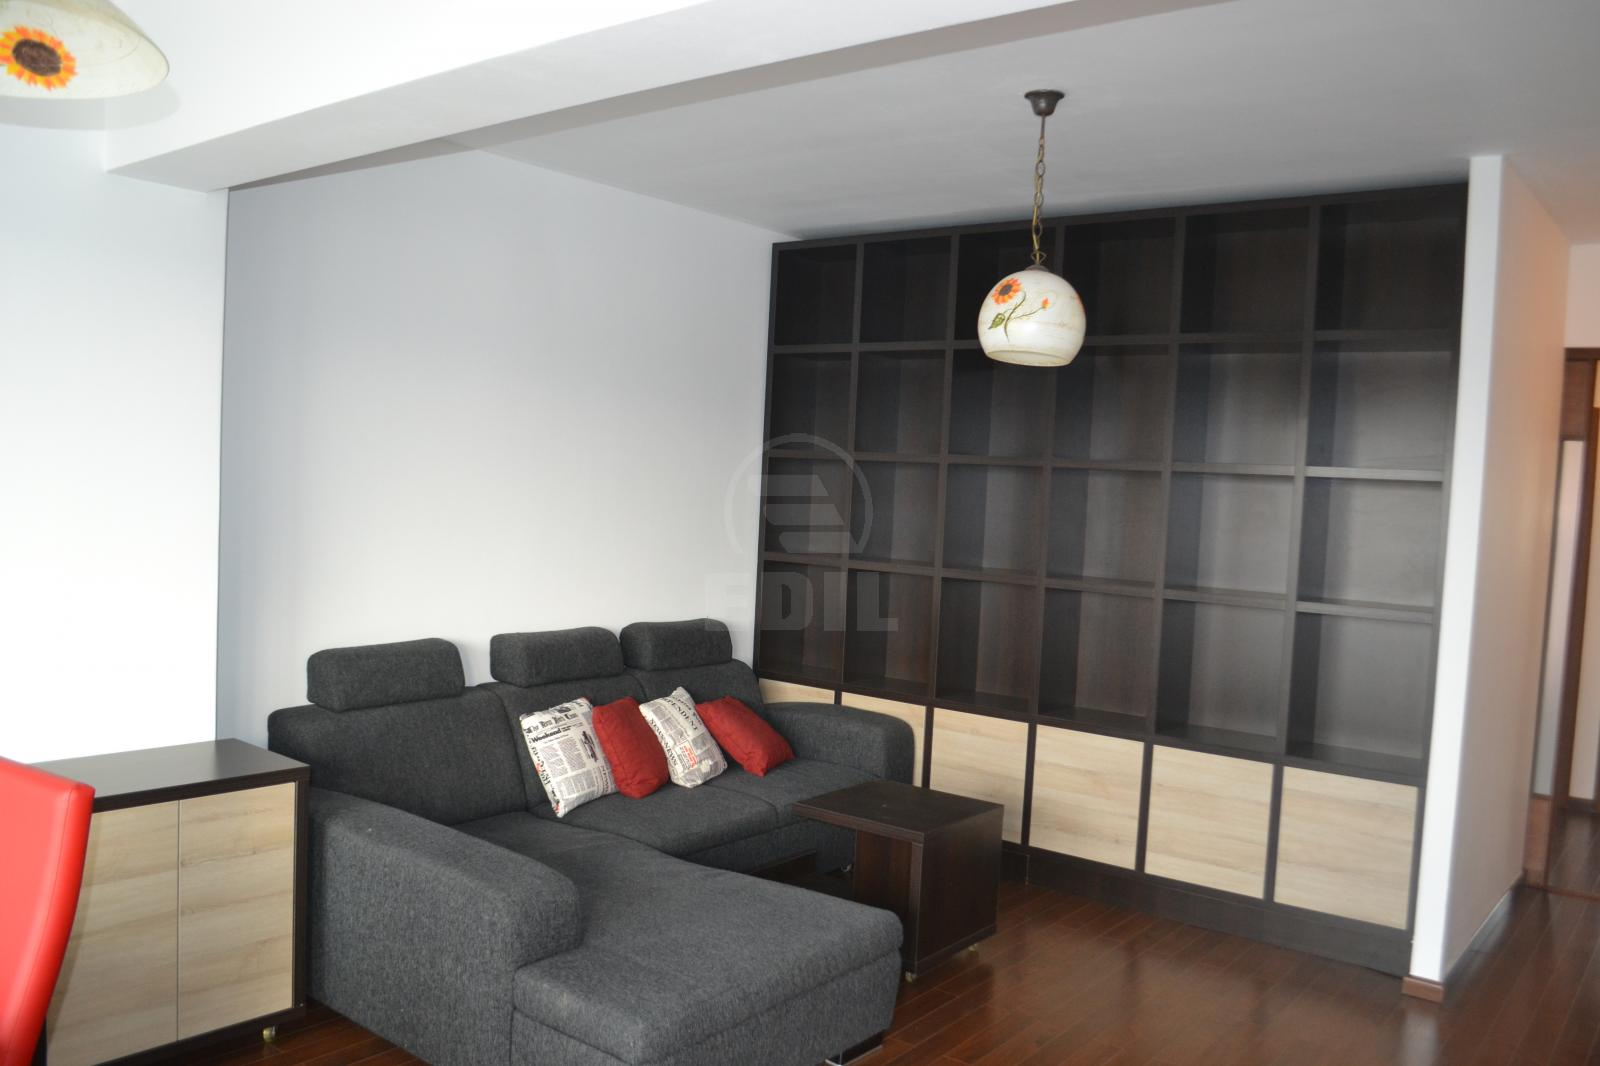 Apartment for rent 3 rooms, APCJ271208-3